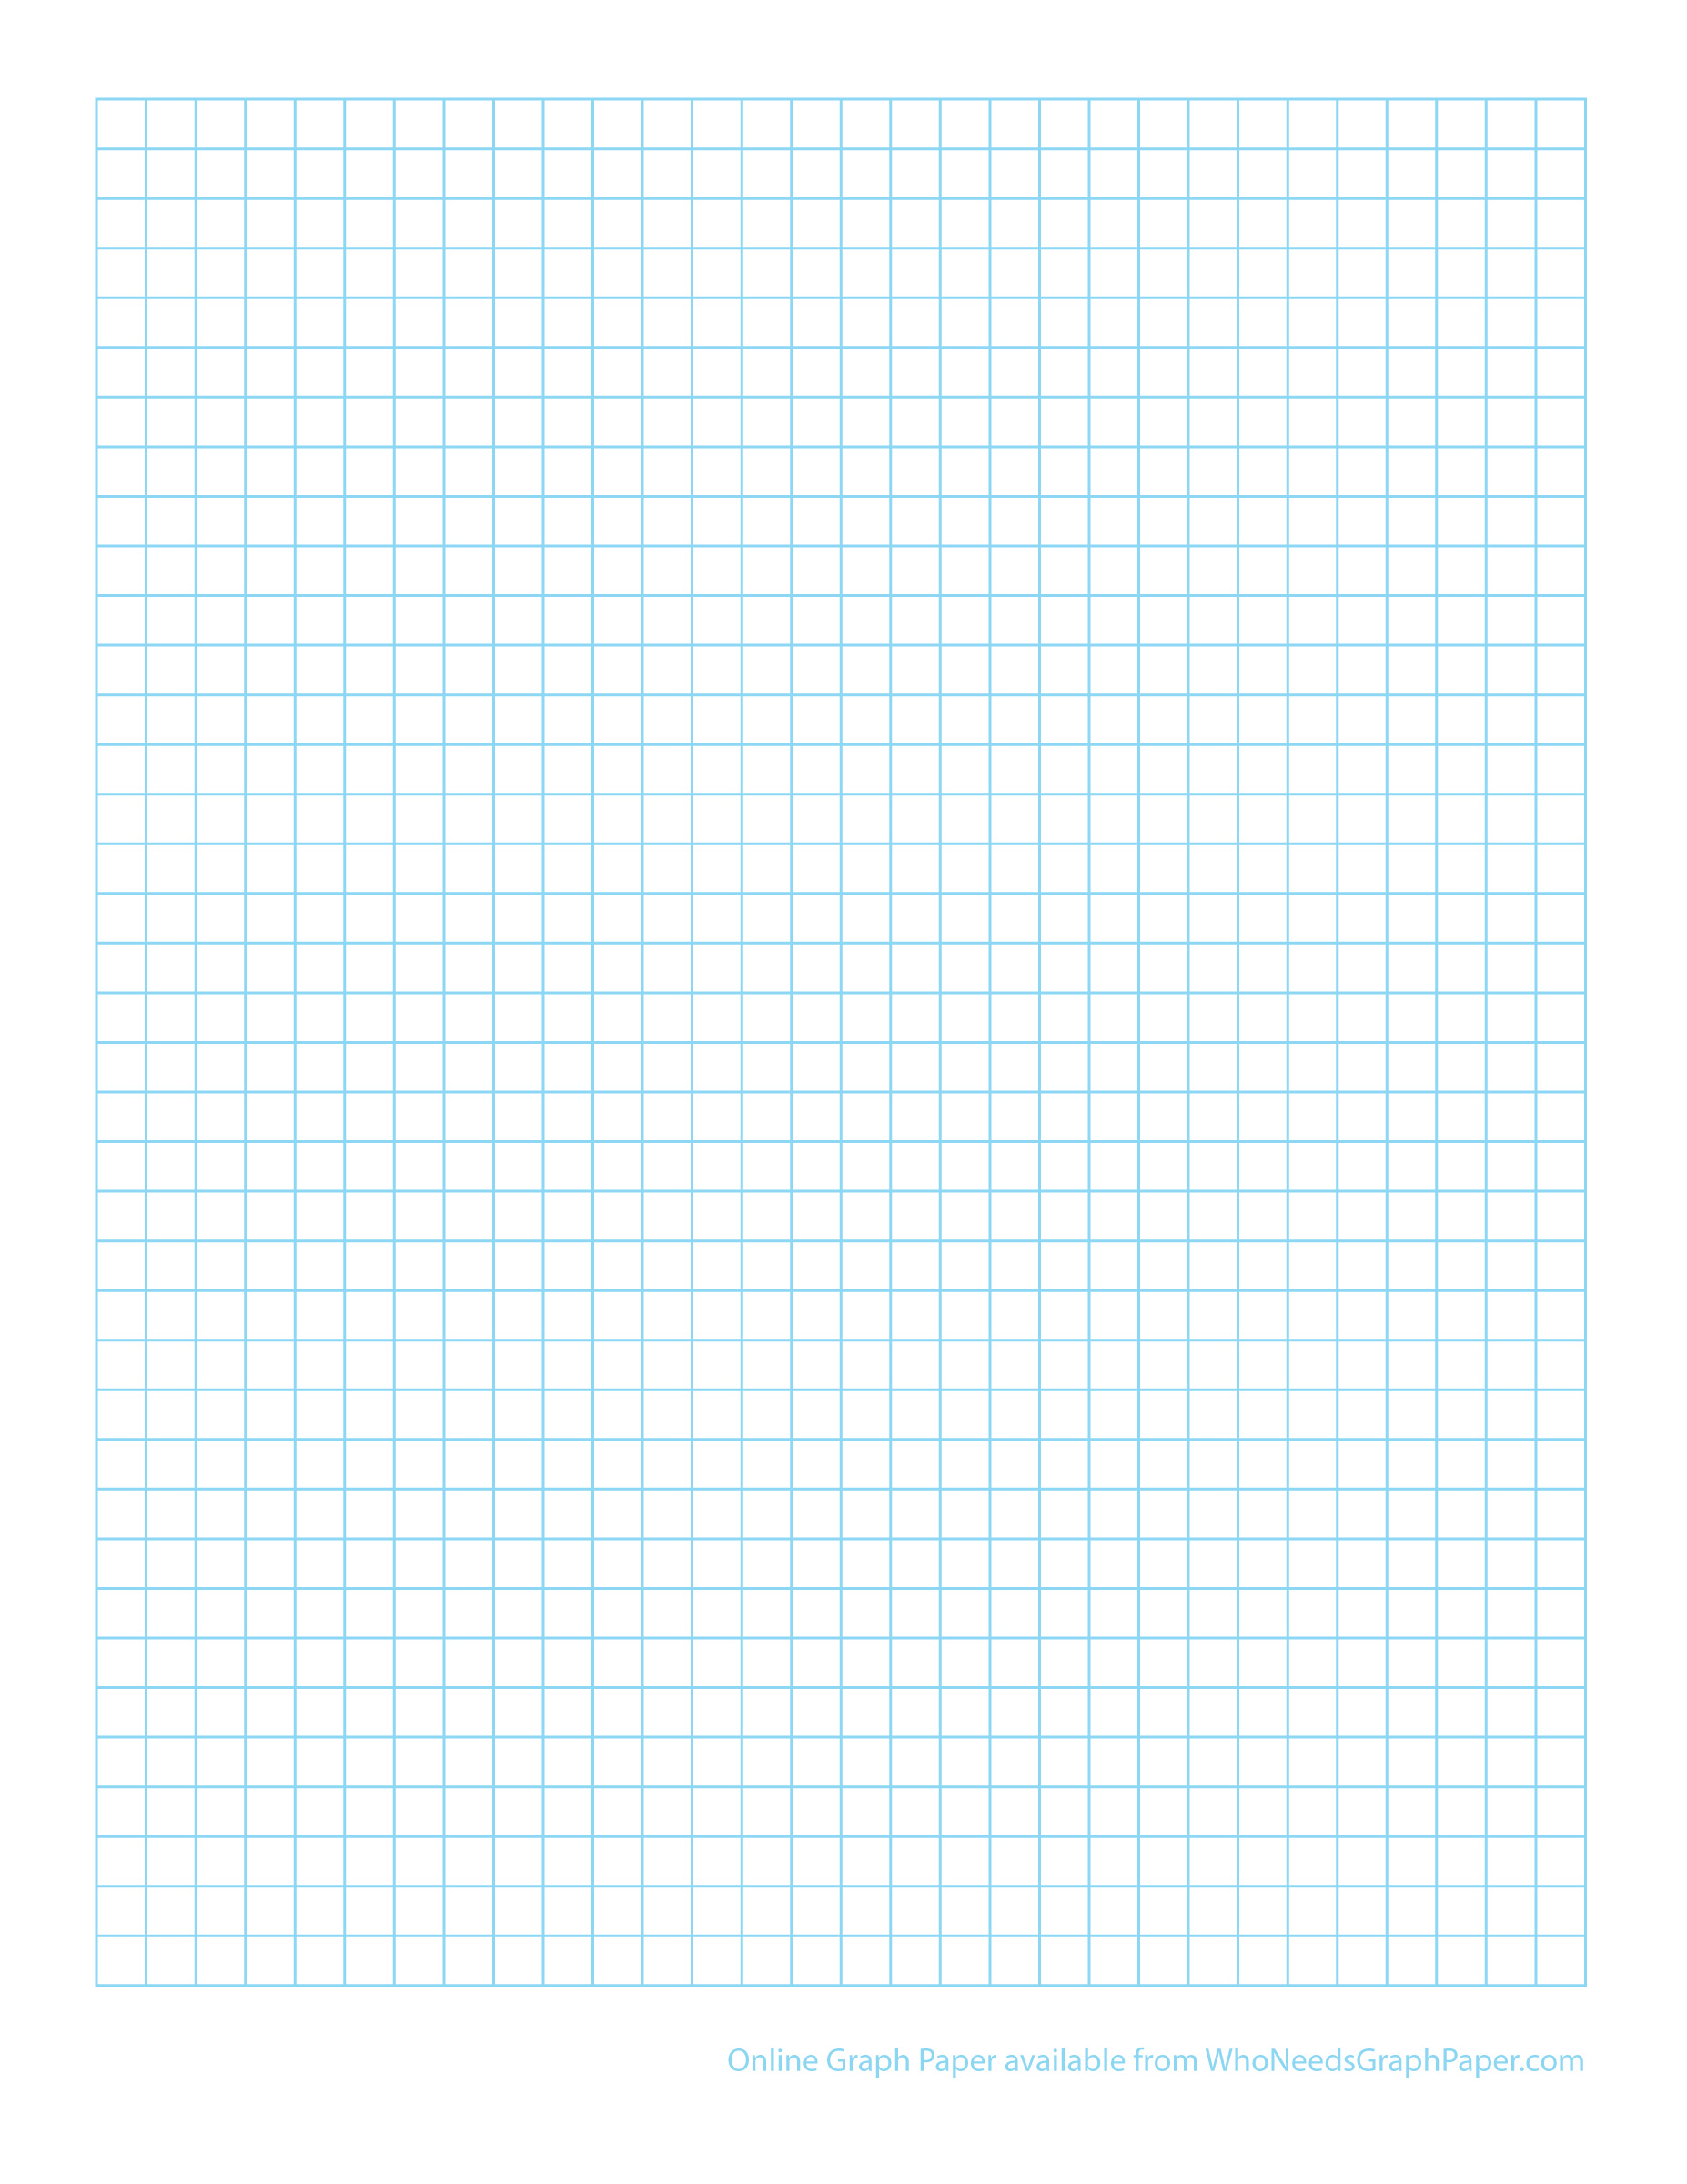 This is a photo of Resource Print Grid Paper